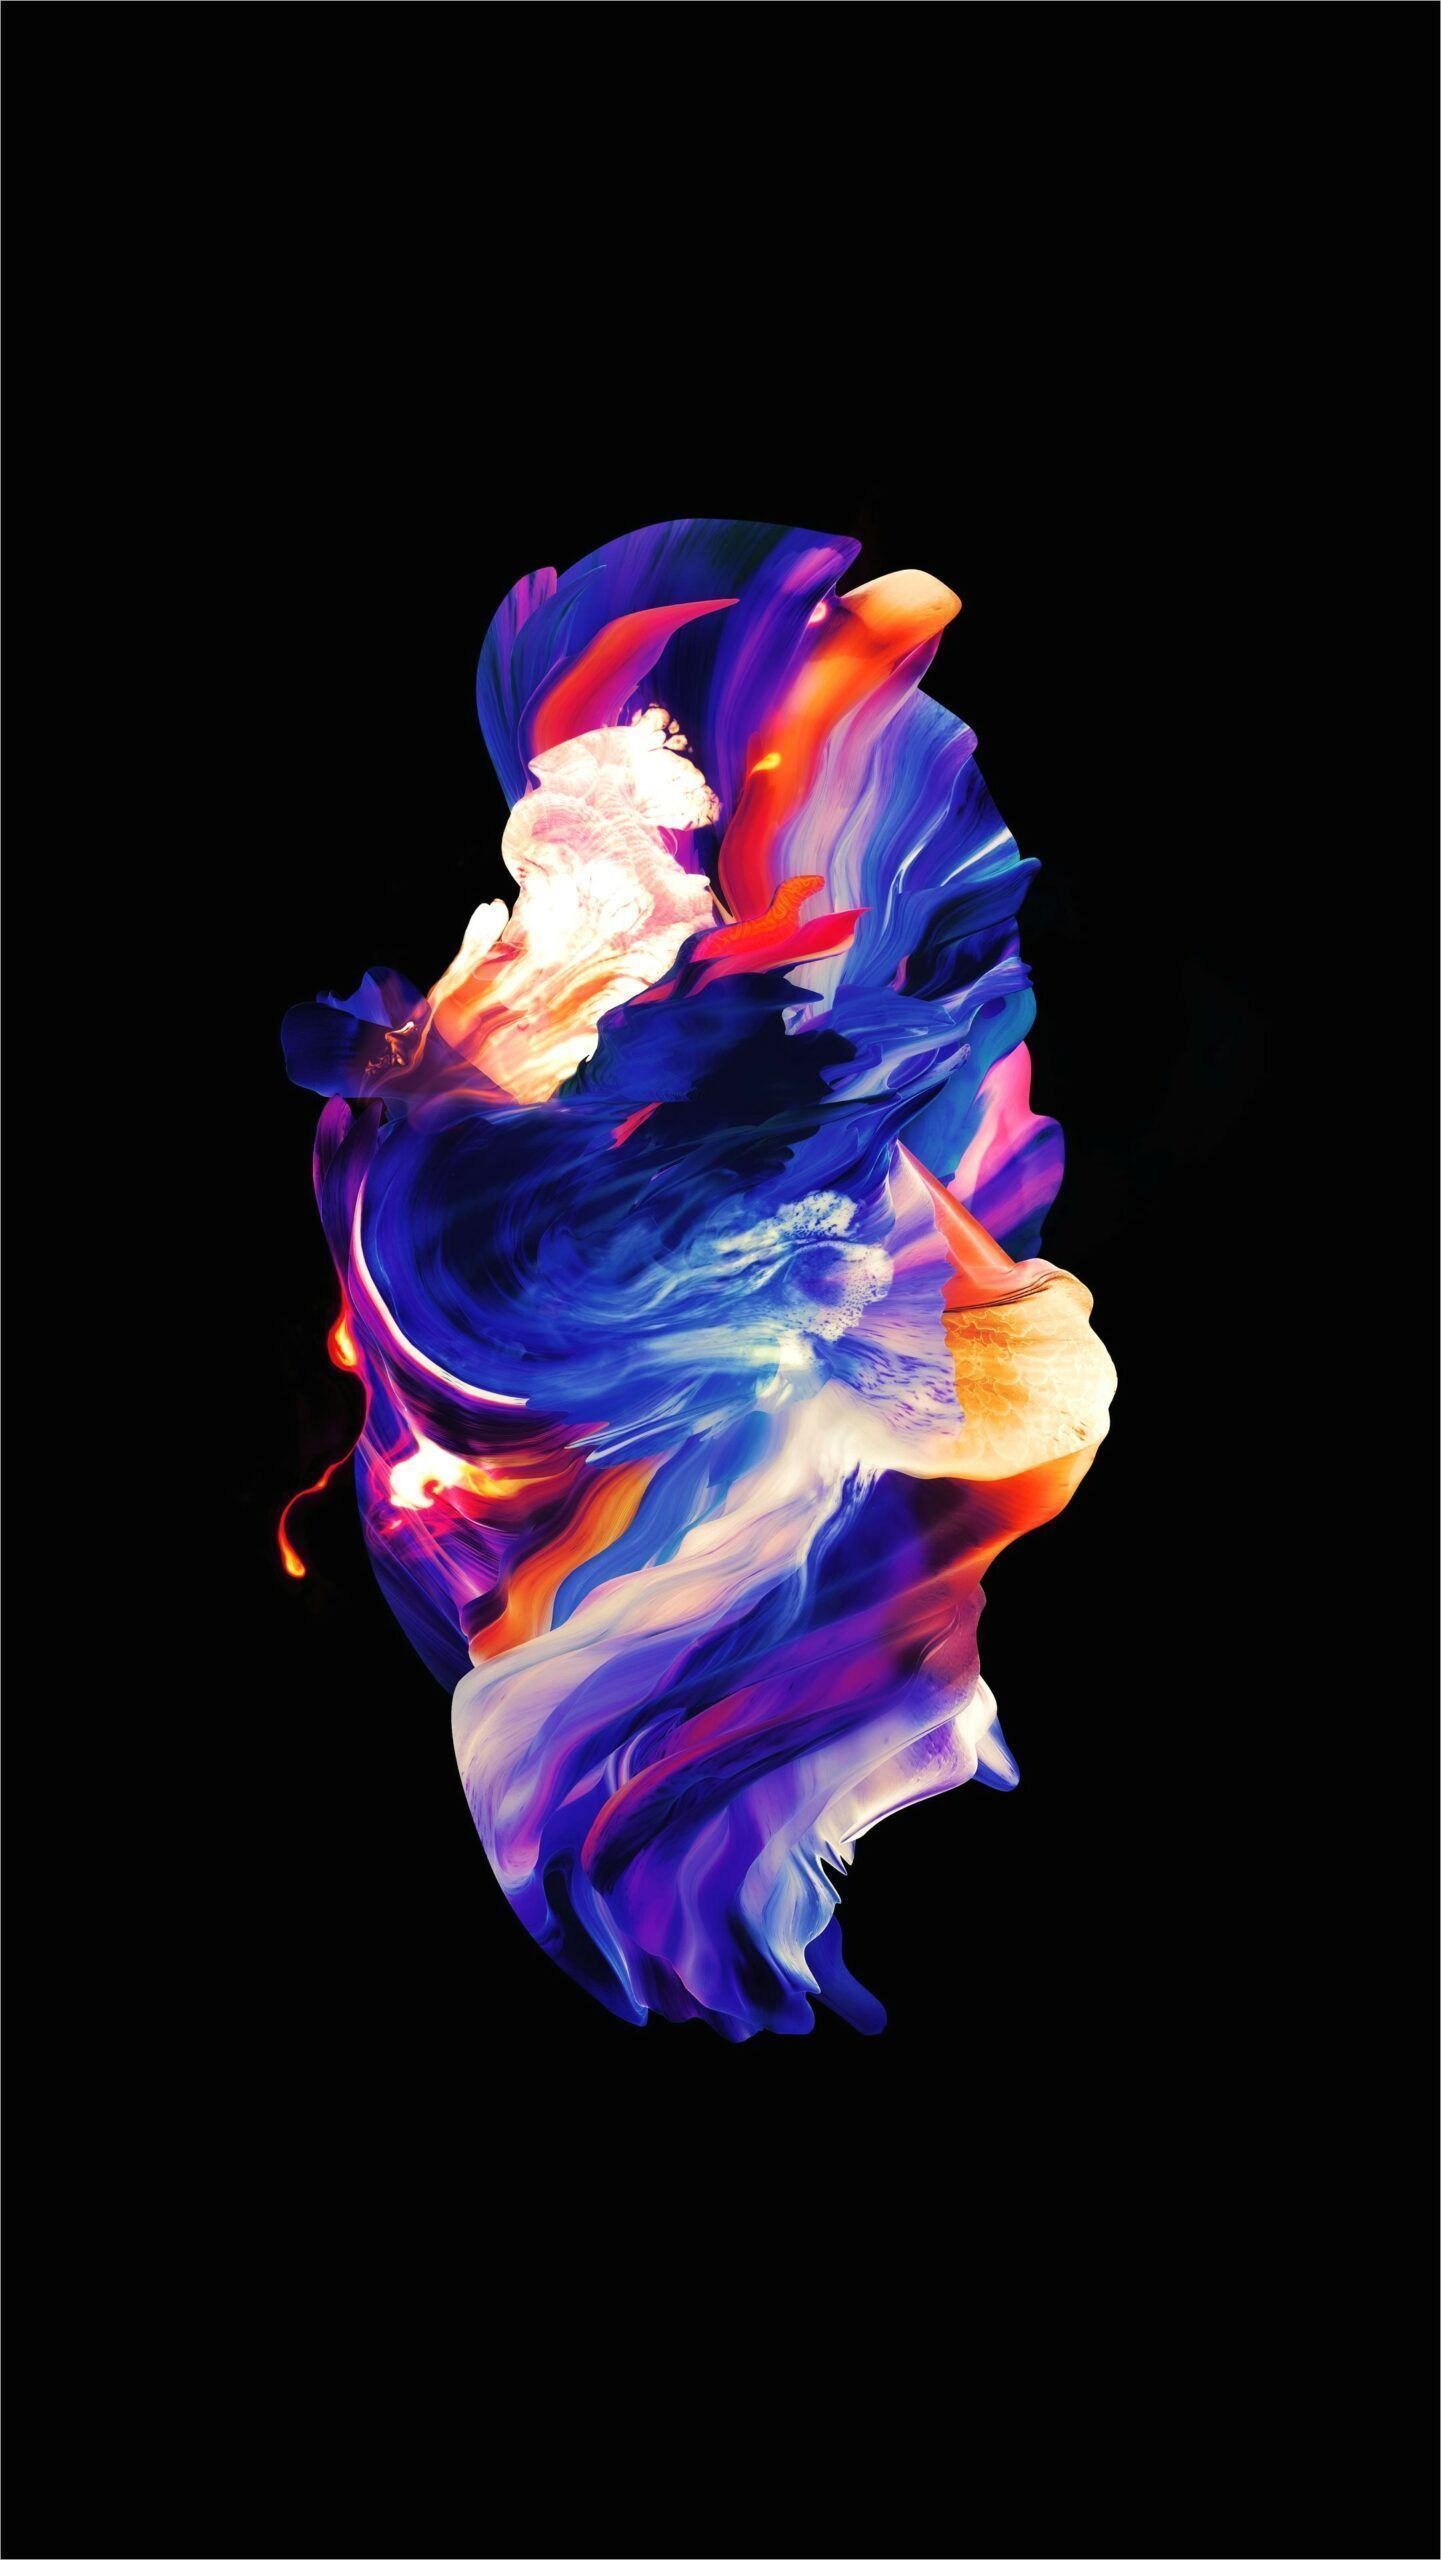 4k Amoled Wallpaper For Mobile In 2020 Oneplus Wallpapers Background Hd Wallpaper Black Hd Wallpaper